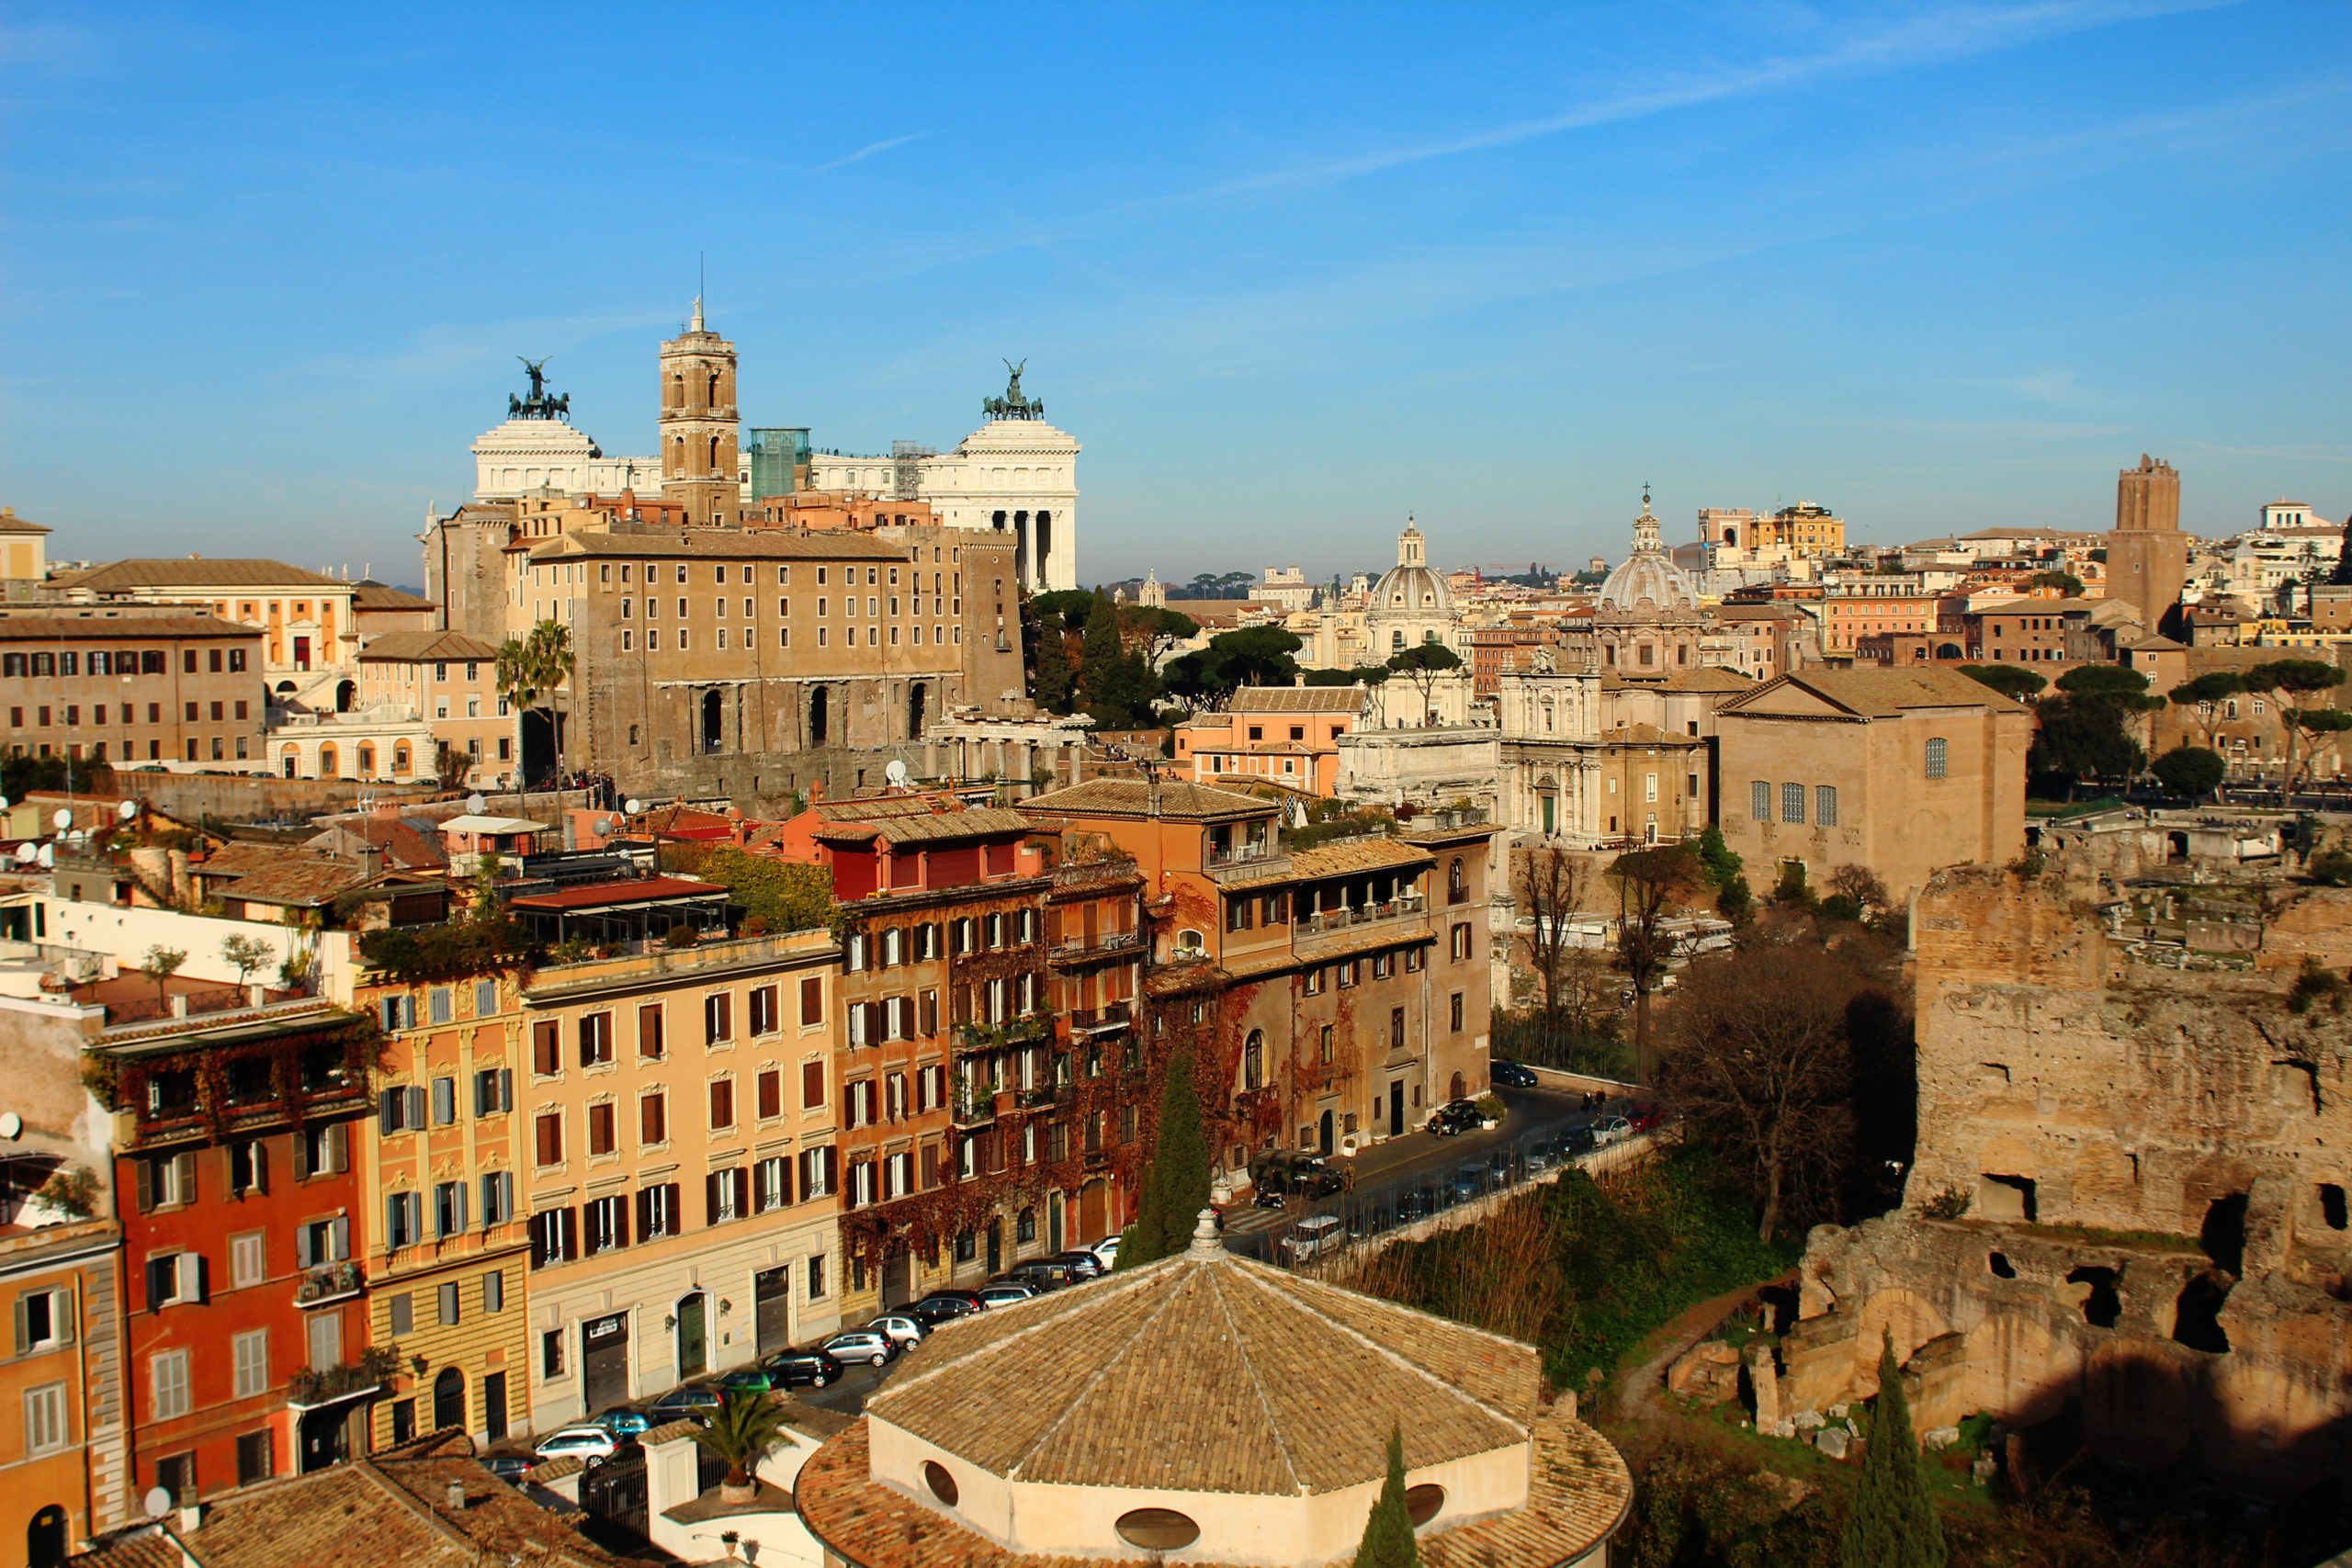 Is Rome overrated?